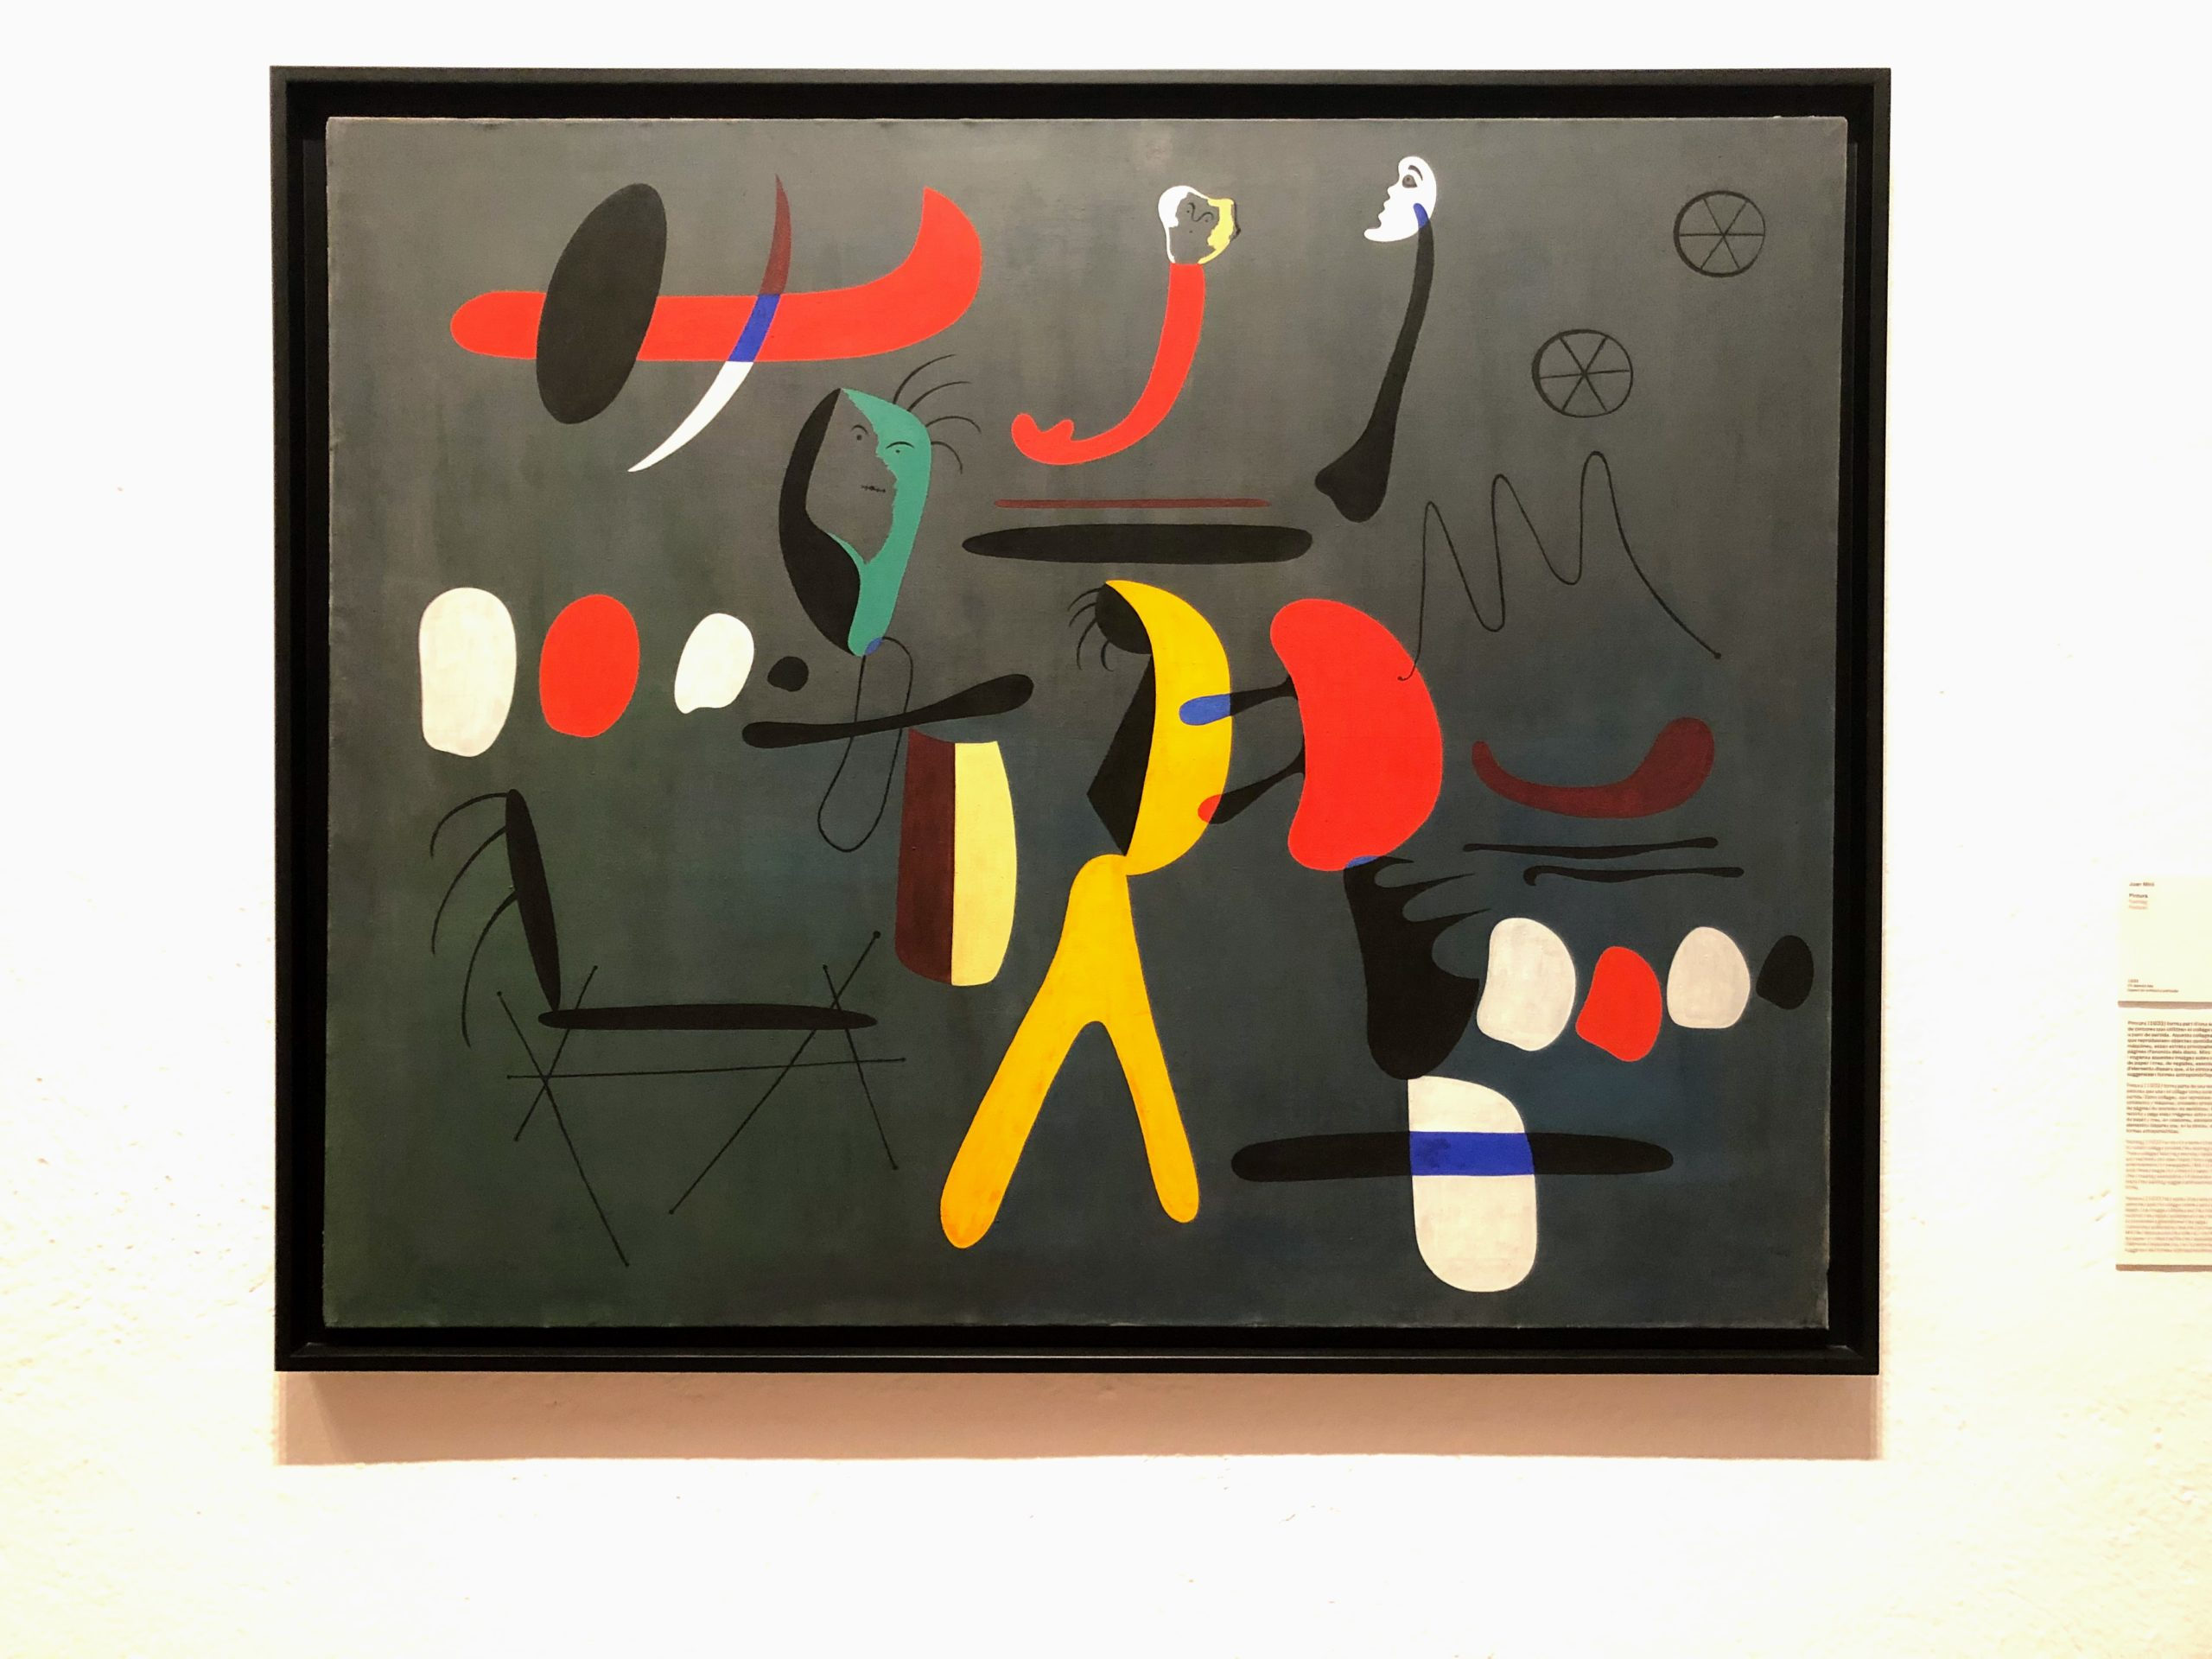 Miró painting with bright shapes on a dark background